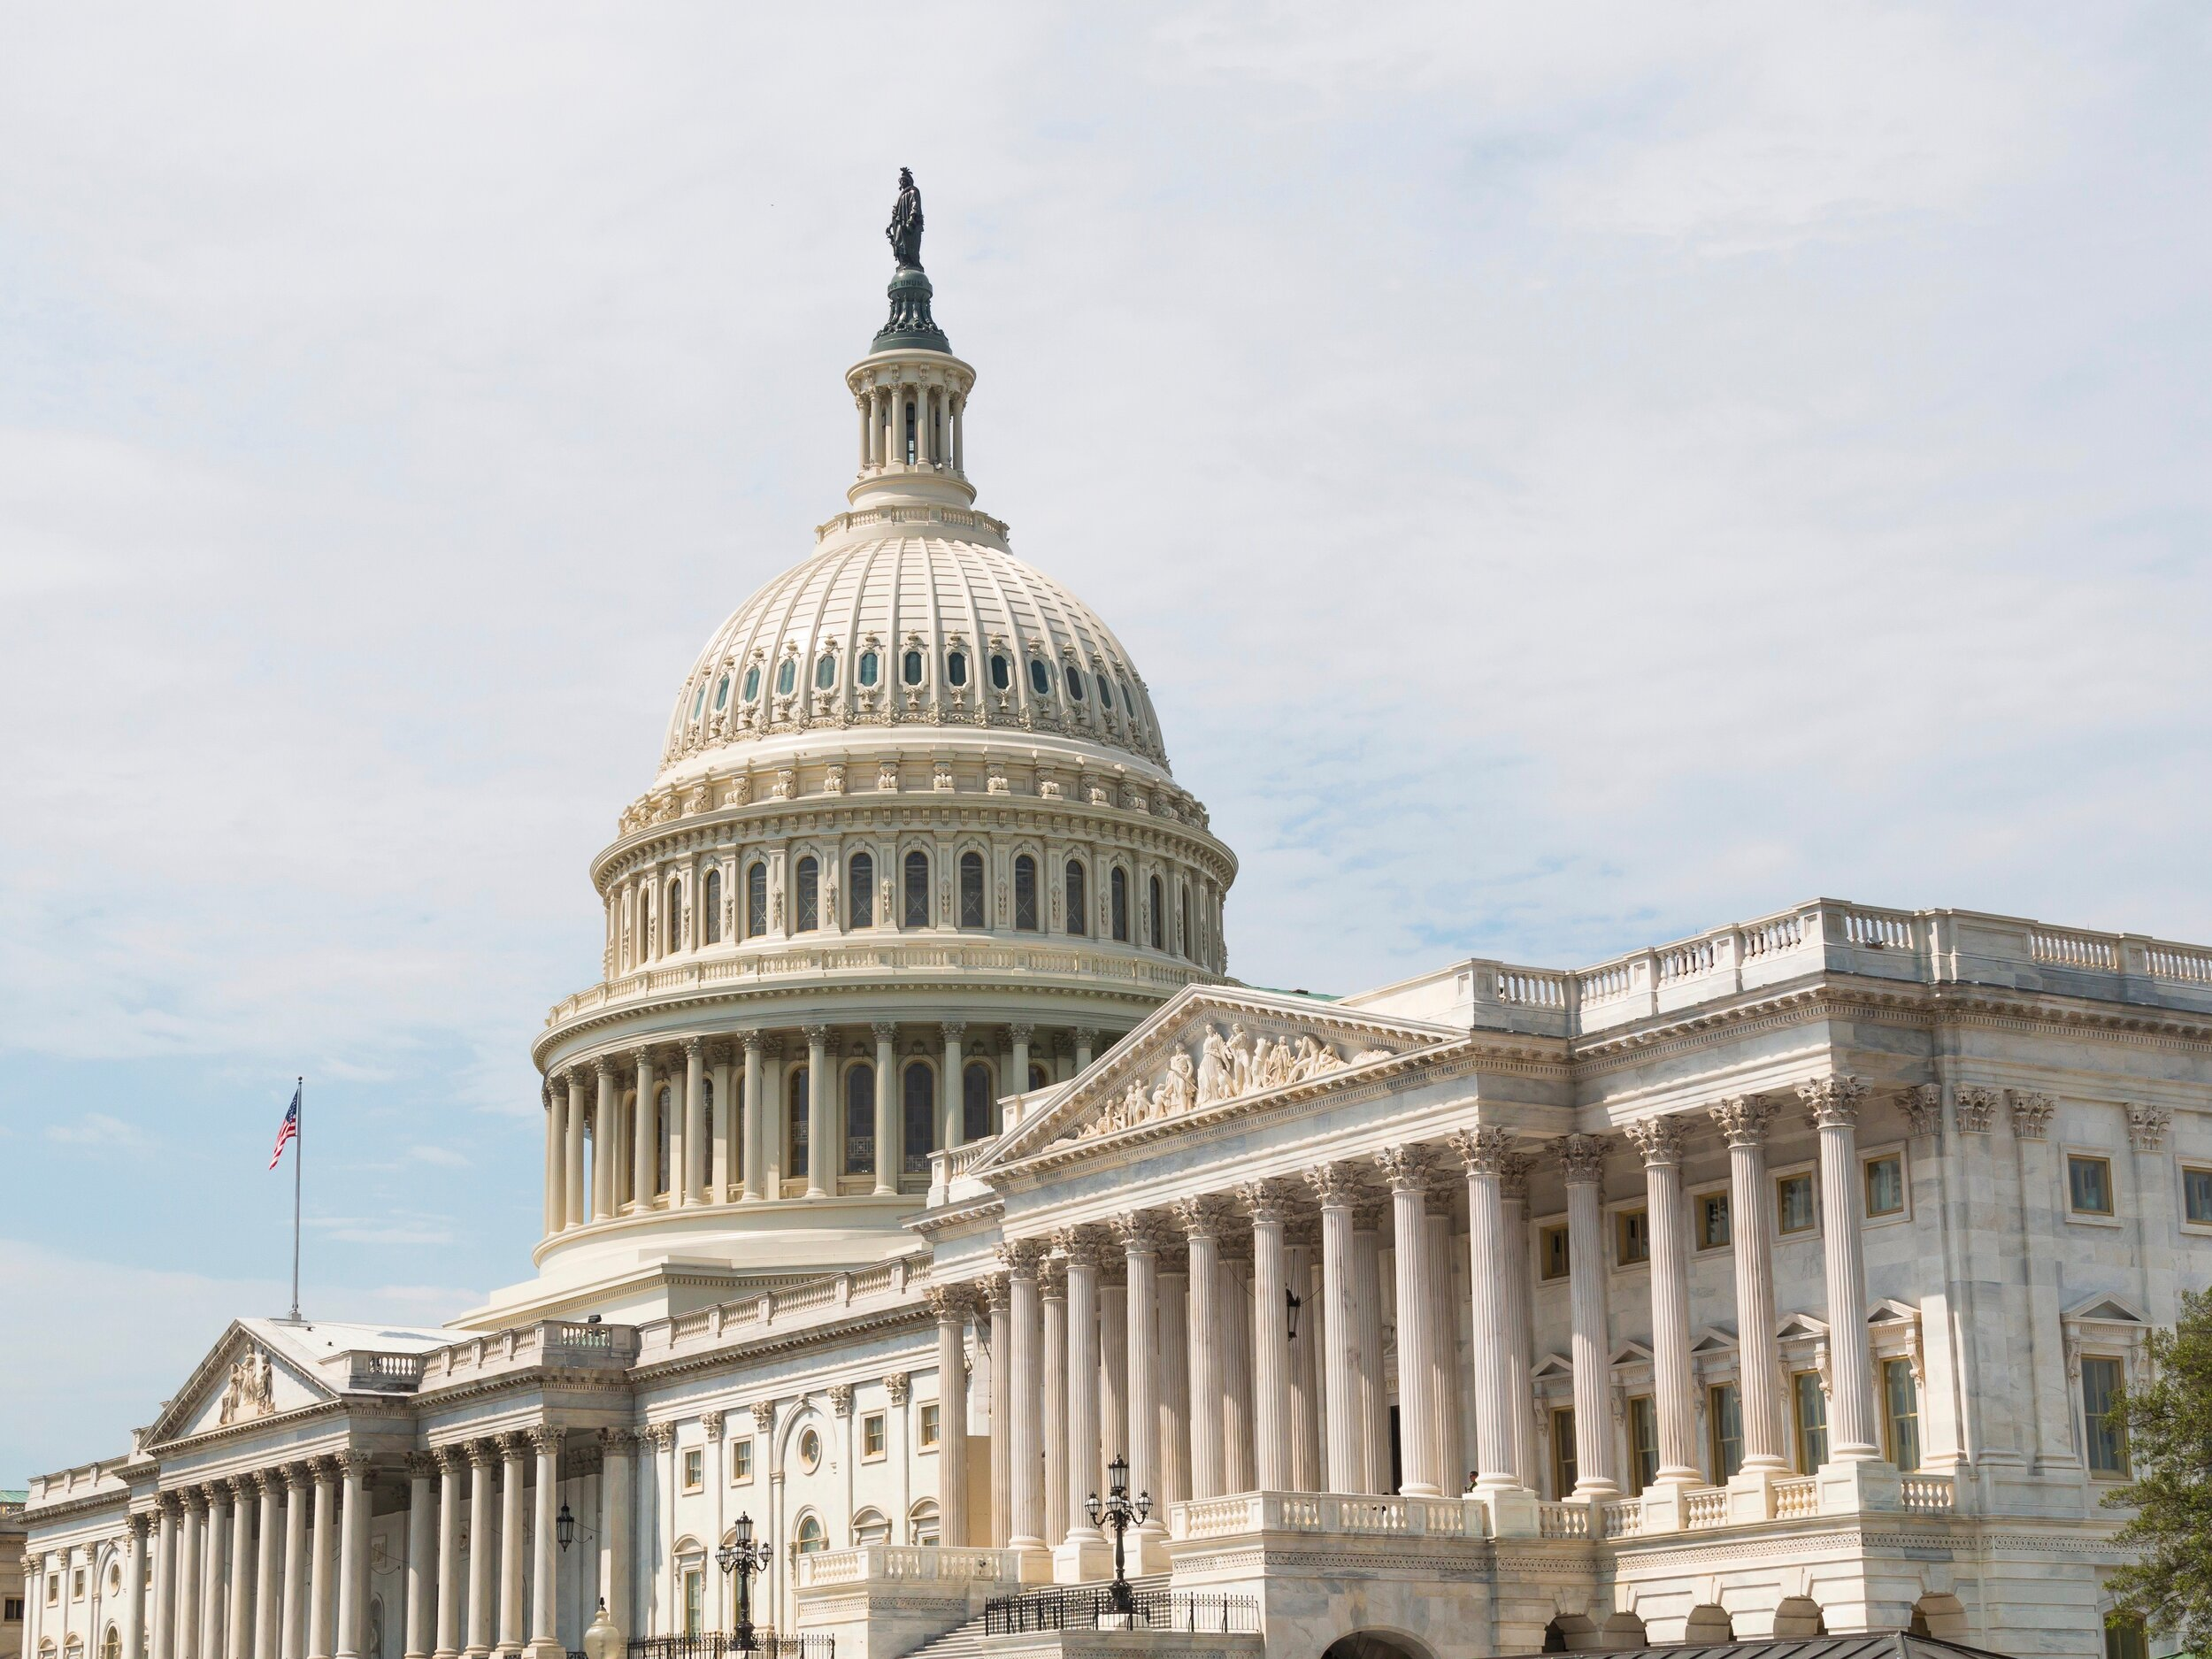 A lobbying group of Illinois farmers brought back little good news from a trip to the U.S. Capitol. (Shutterstock)